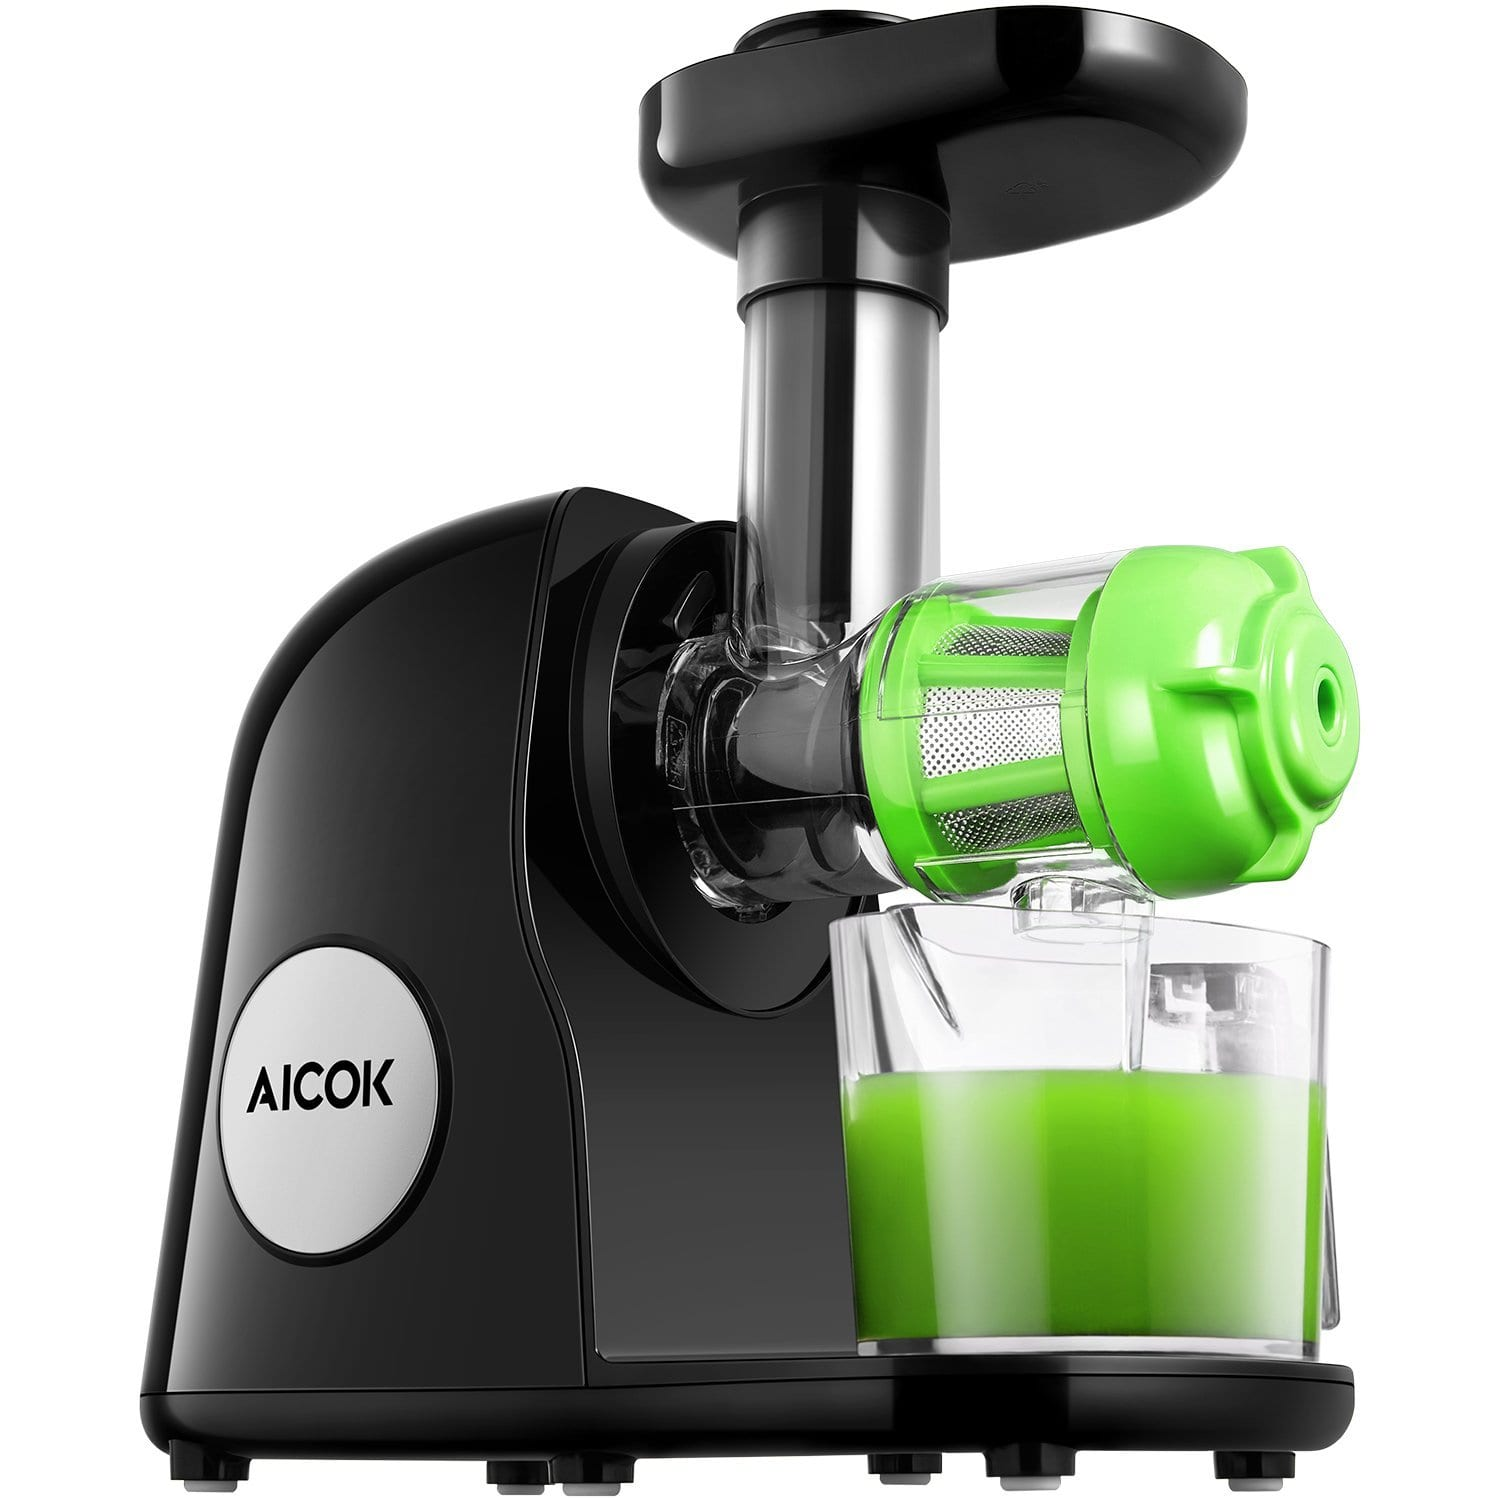 Aicok Slow Masticating Juicer Extractor : Aicok Juicer Slow Masticating Juicer Extractor $68.30 ...